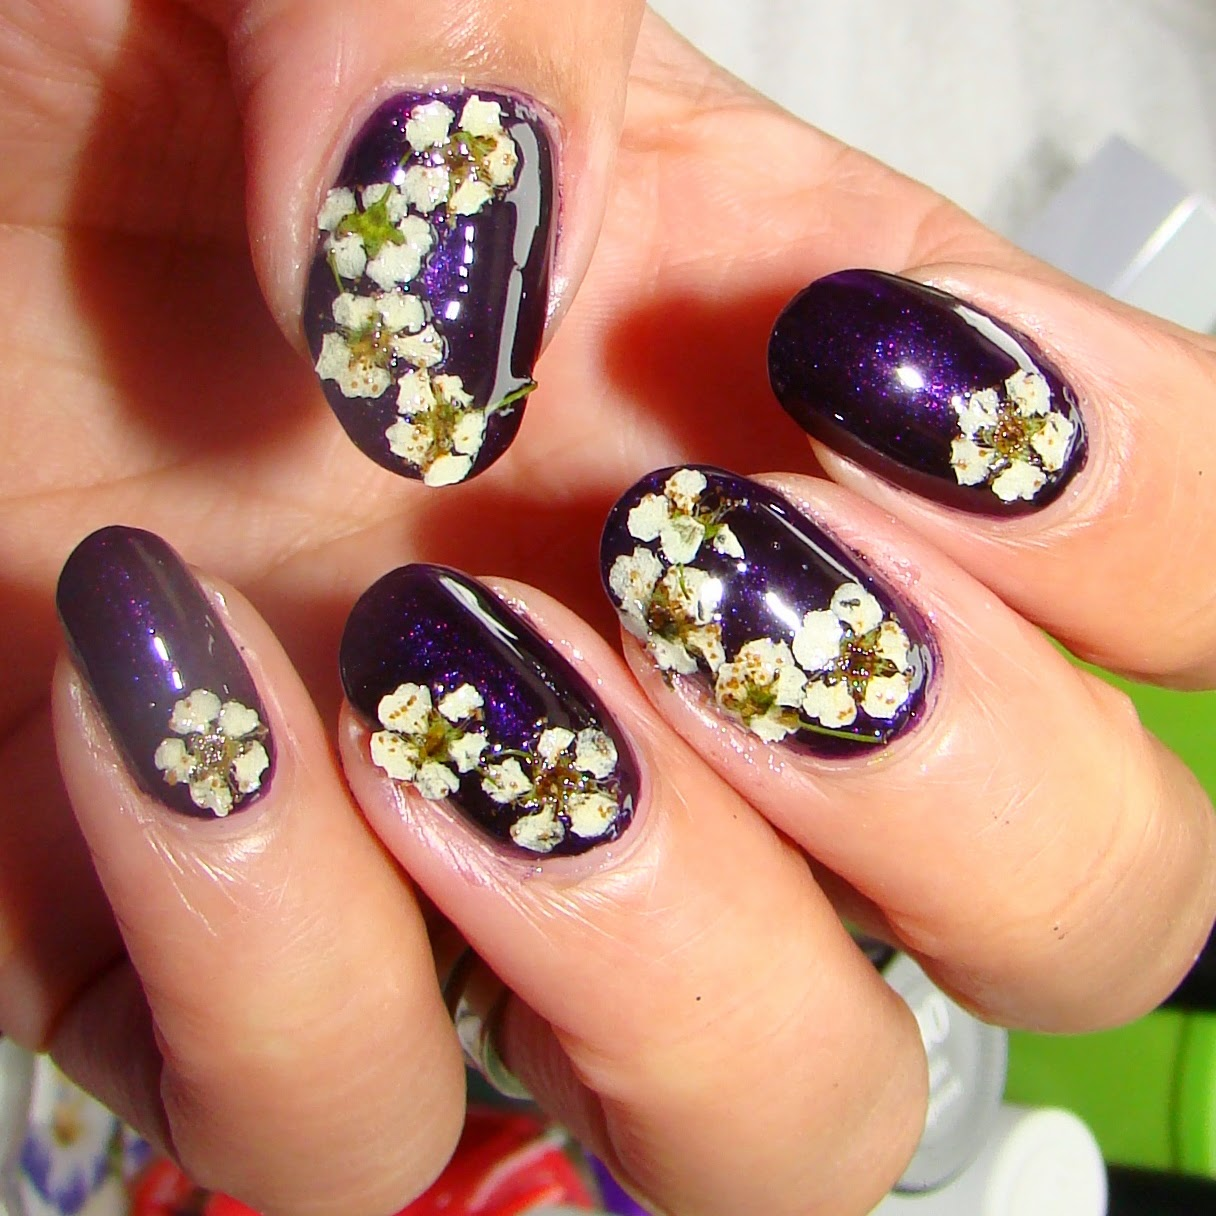 Scented Polish and Pretty Pressed Flowers | Pretty Nails and Tea